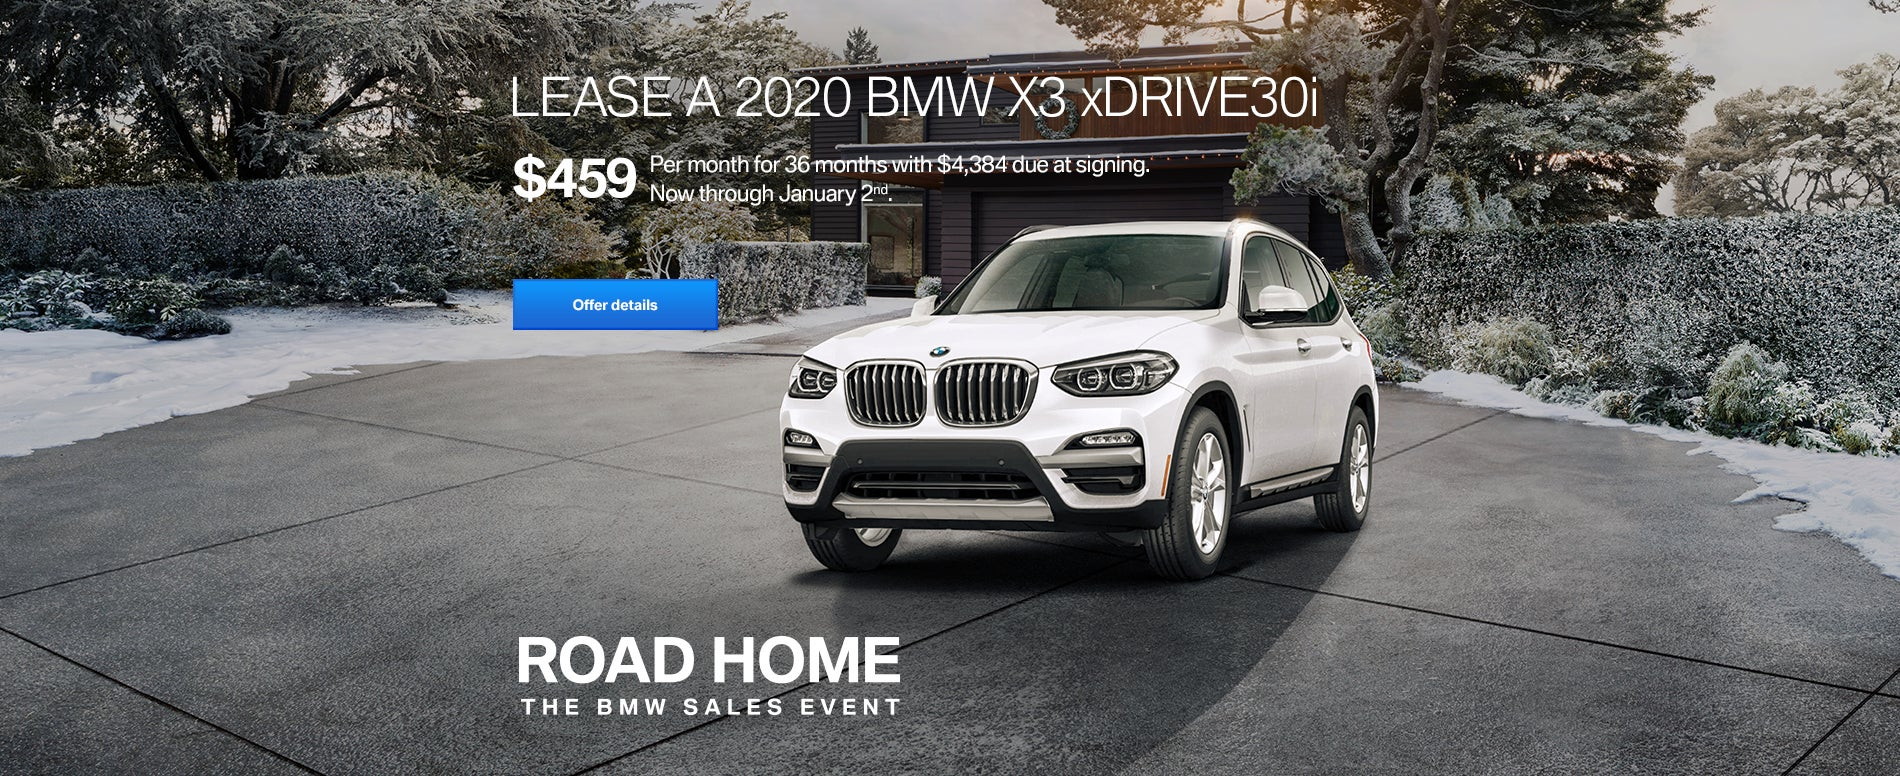 Bmw Dealership Madison Wi Sun Prairie Middleton Bmw Dealer